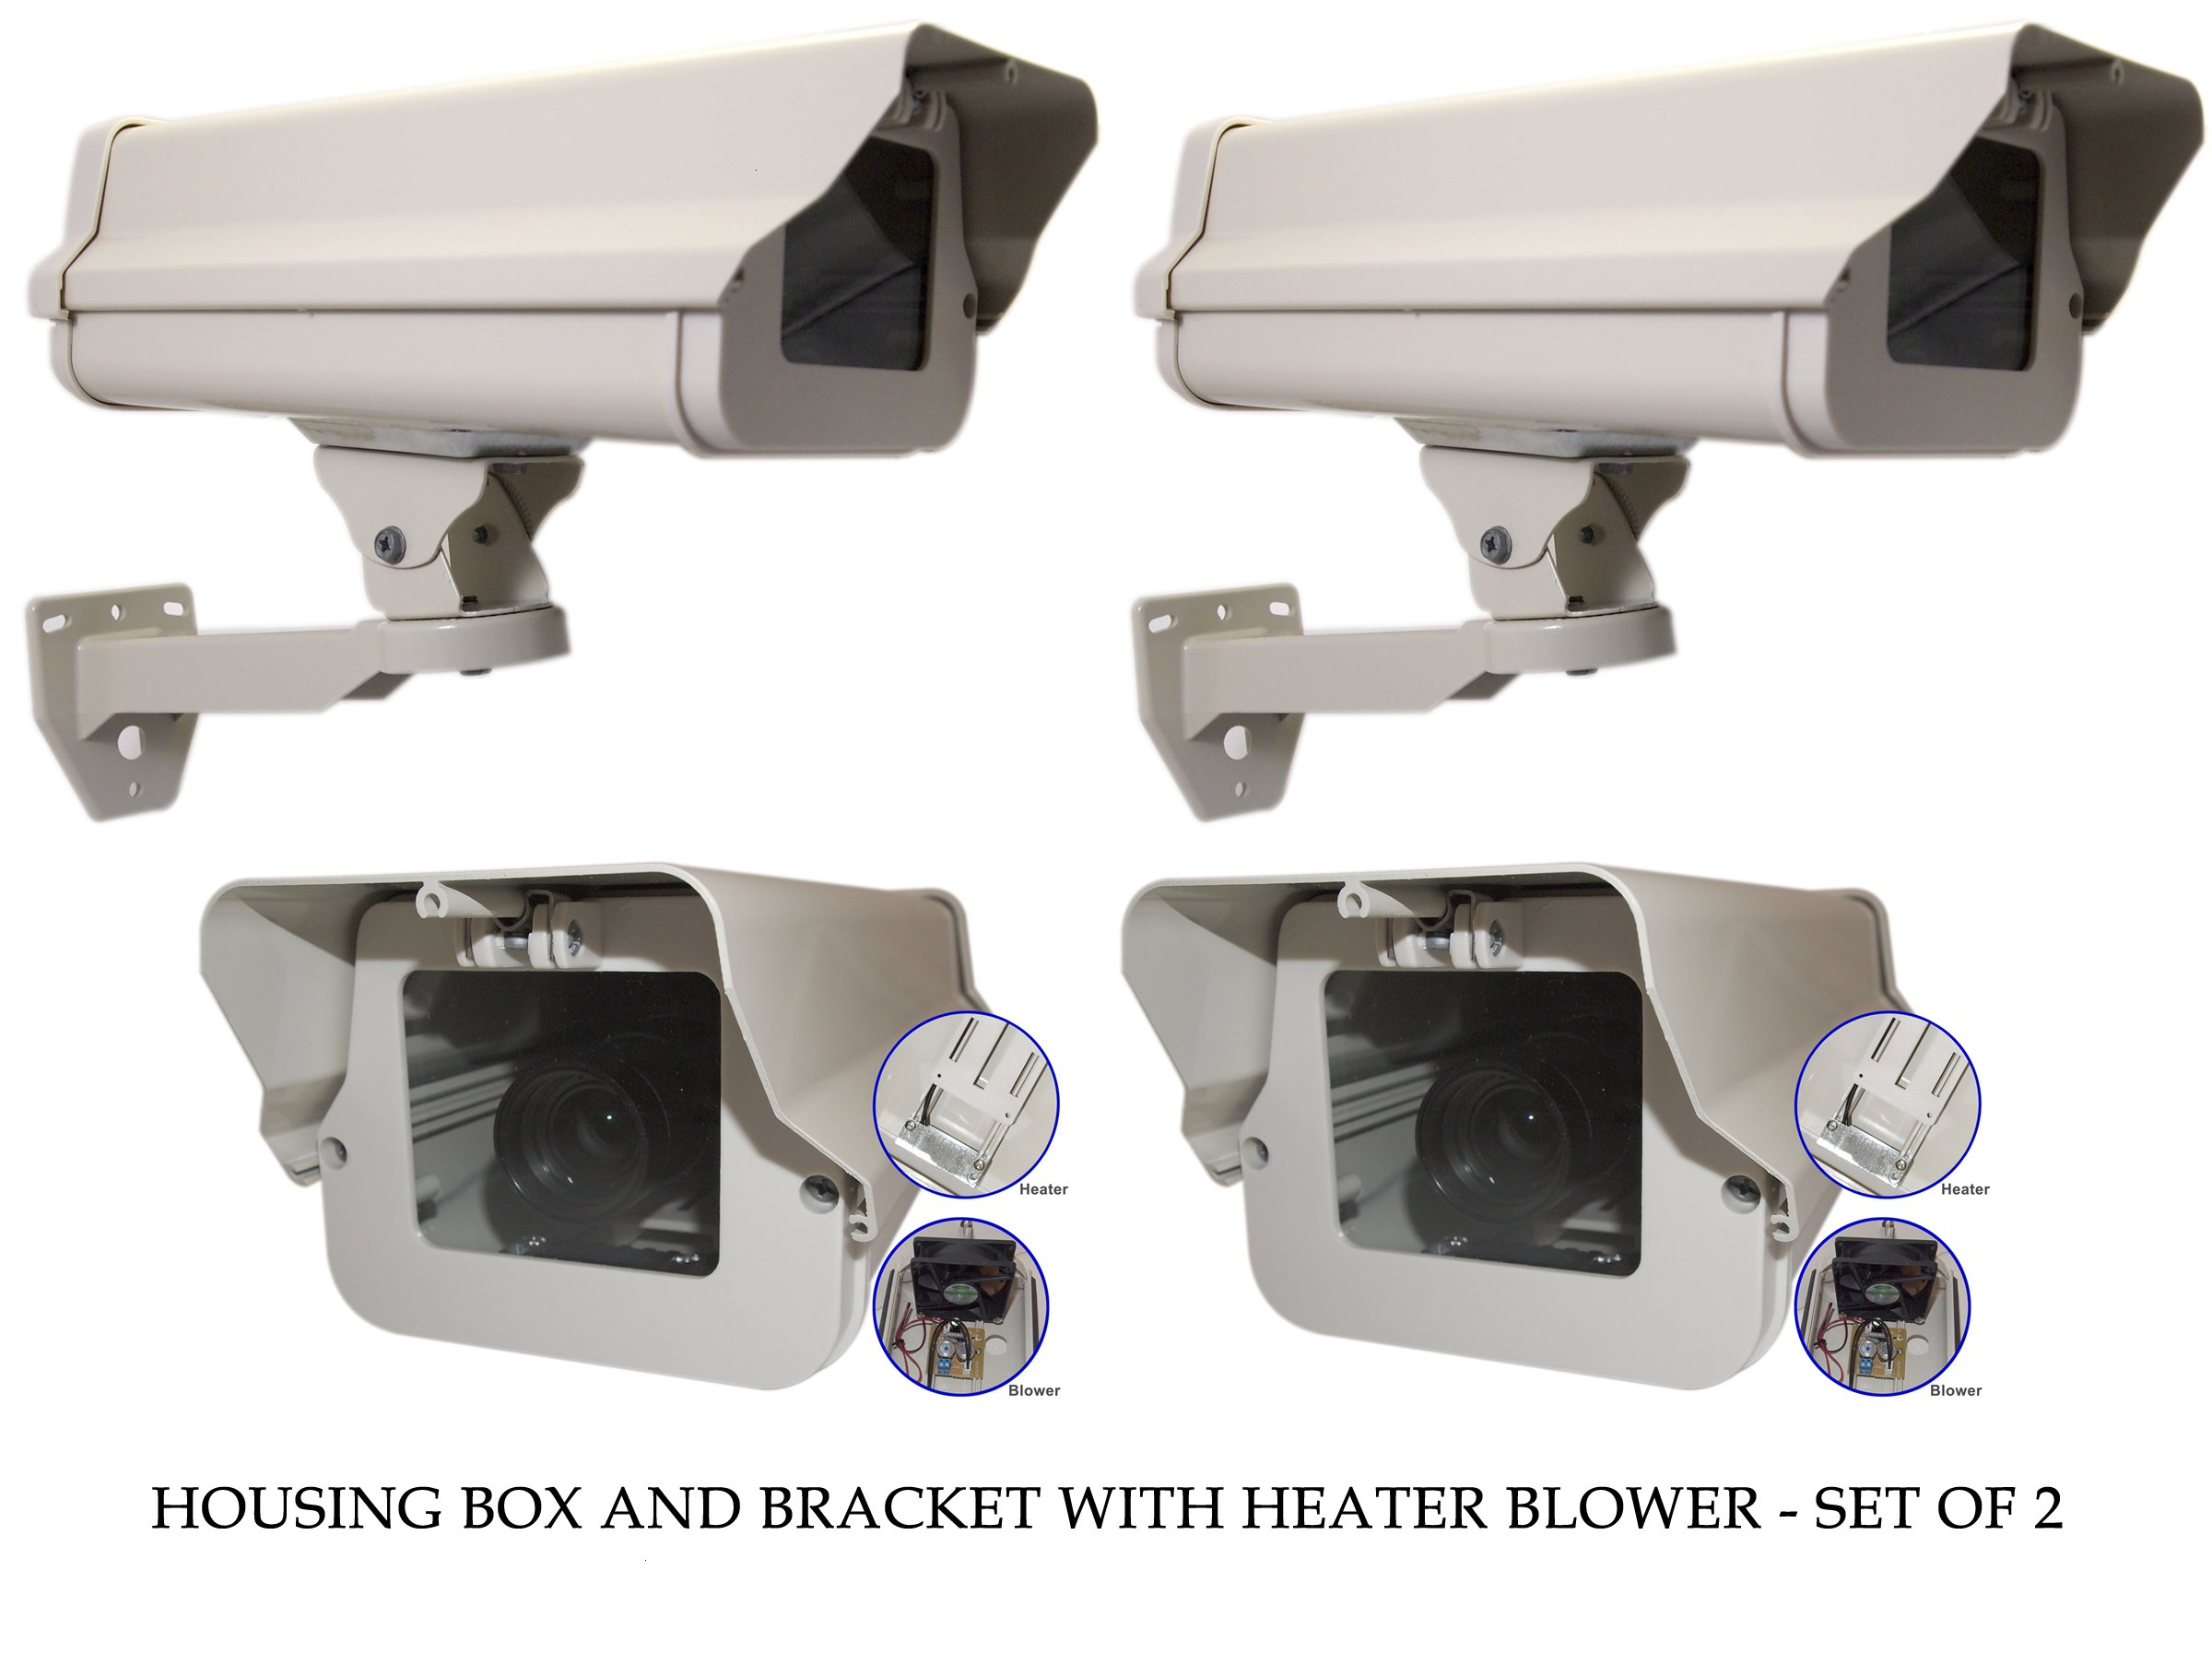 Evertech Housing CCTV Security Surveillance Outdoor Camera box with Bracket and Heater-Blower Weatherproof Heavy Duty Aluminum - Brackets Included (SET OF 2)